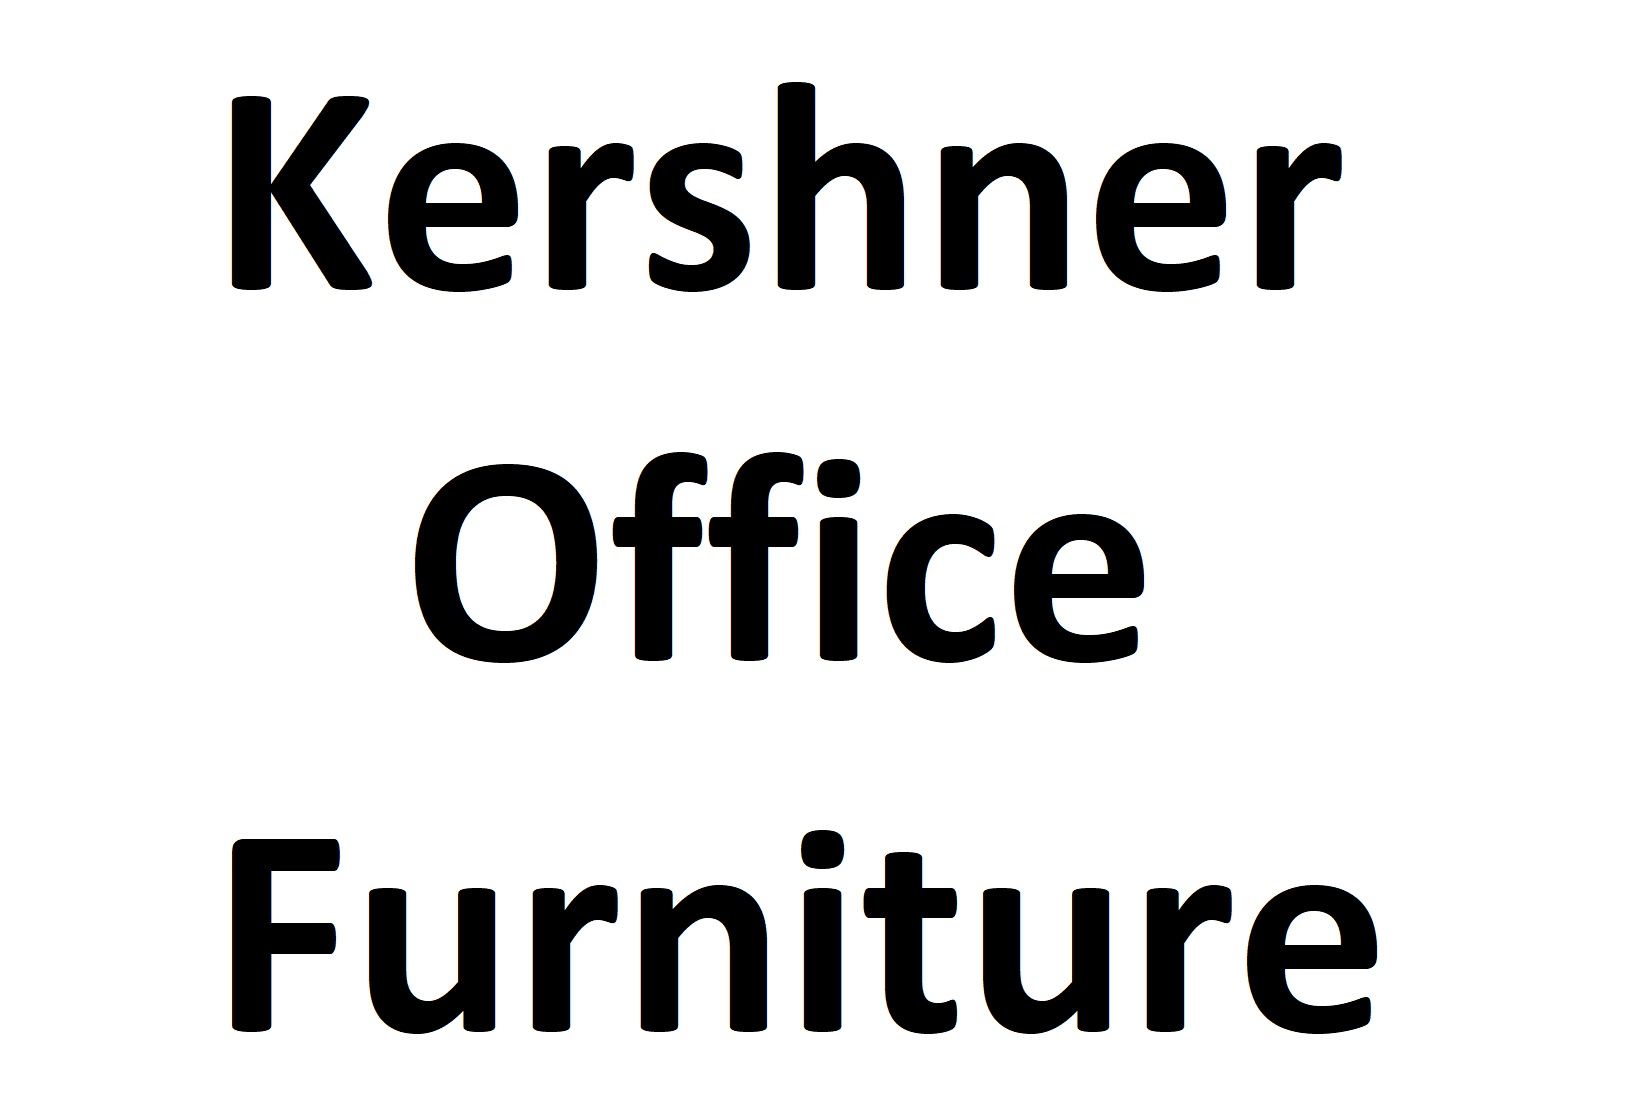 Kershner Office